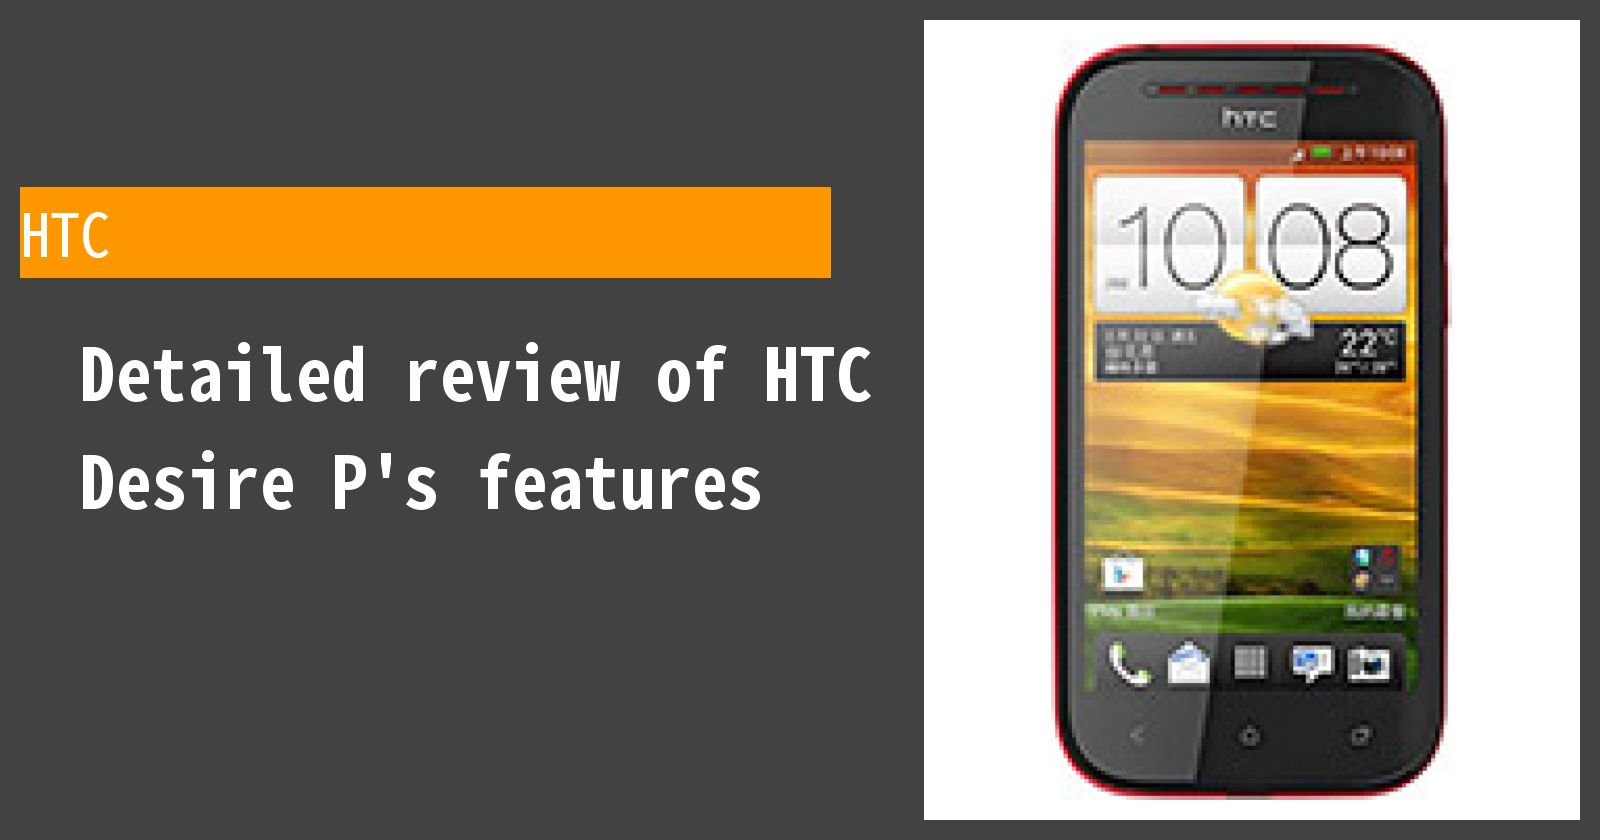 Detailed review of HTC Desire P's features